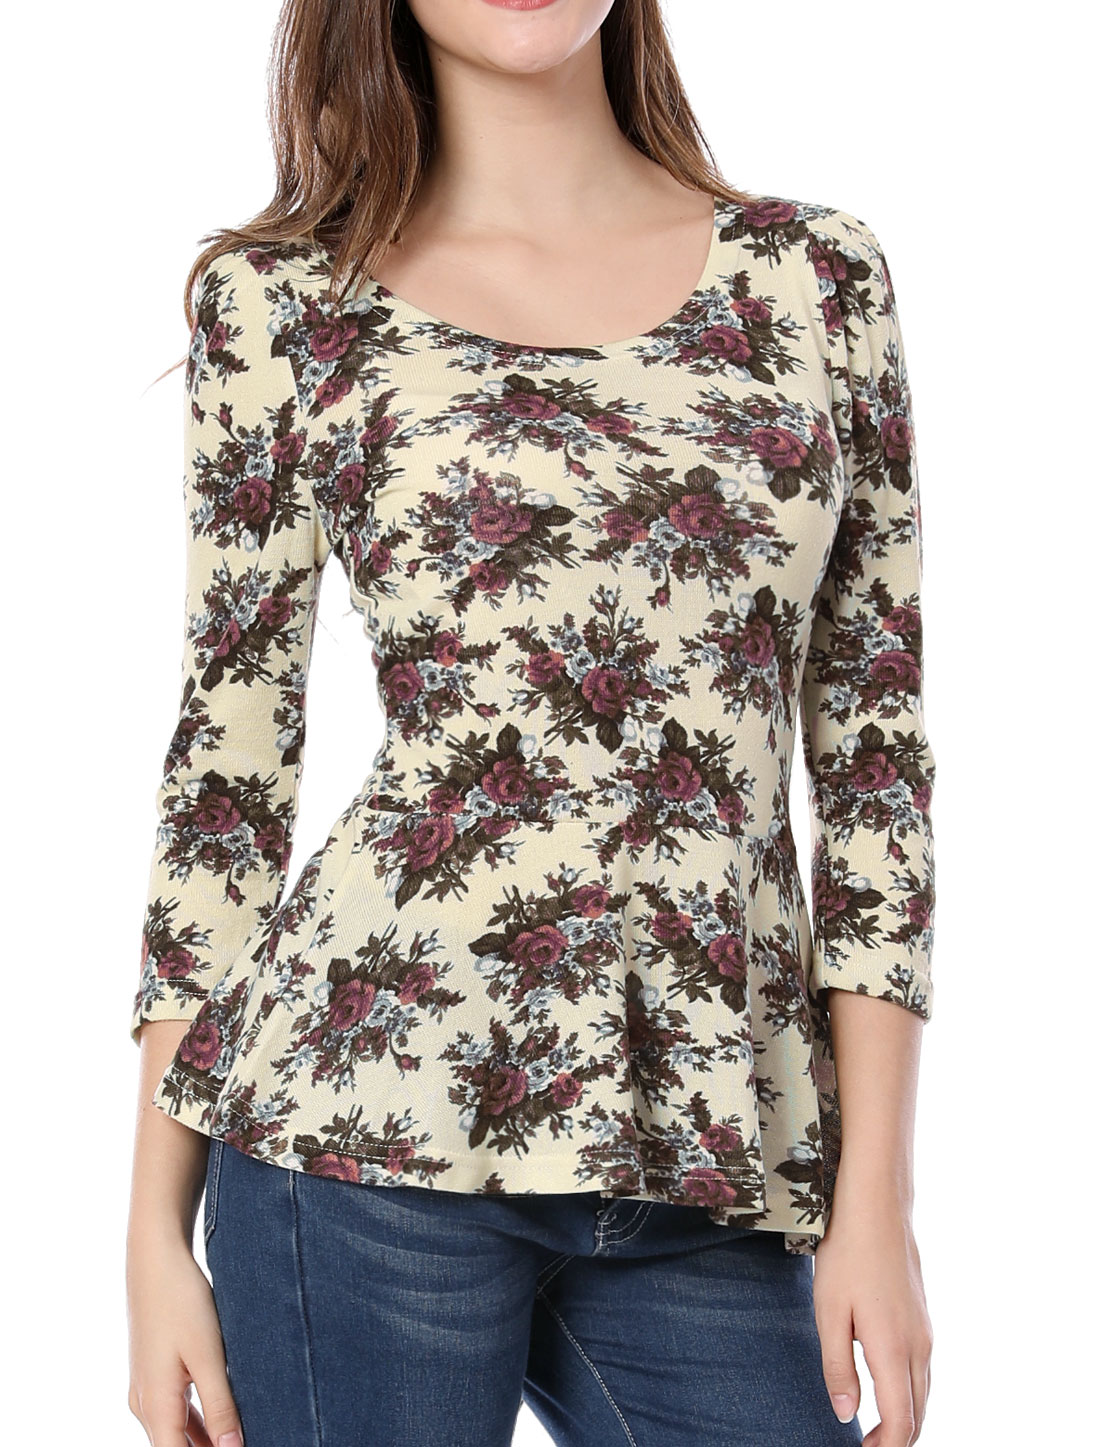 Ladies Cute Flower Pattern Pleated Trim Slim Top Blouse Beige M